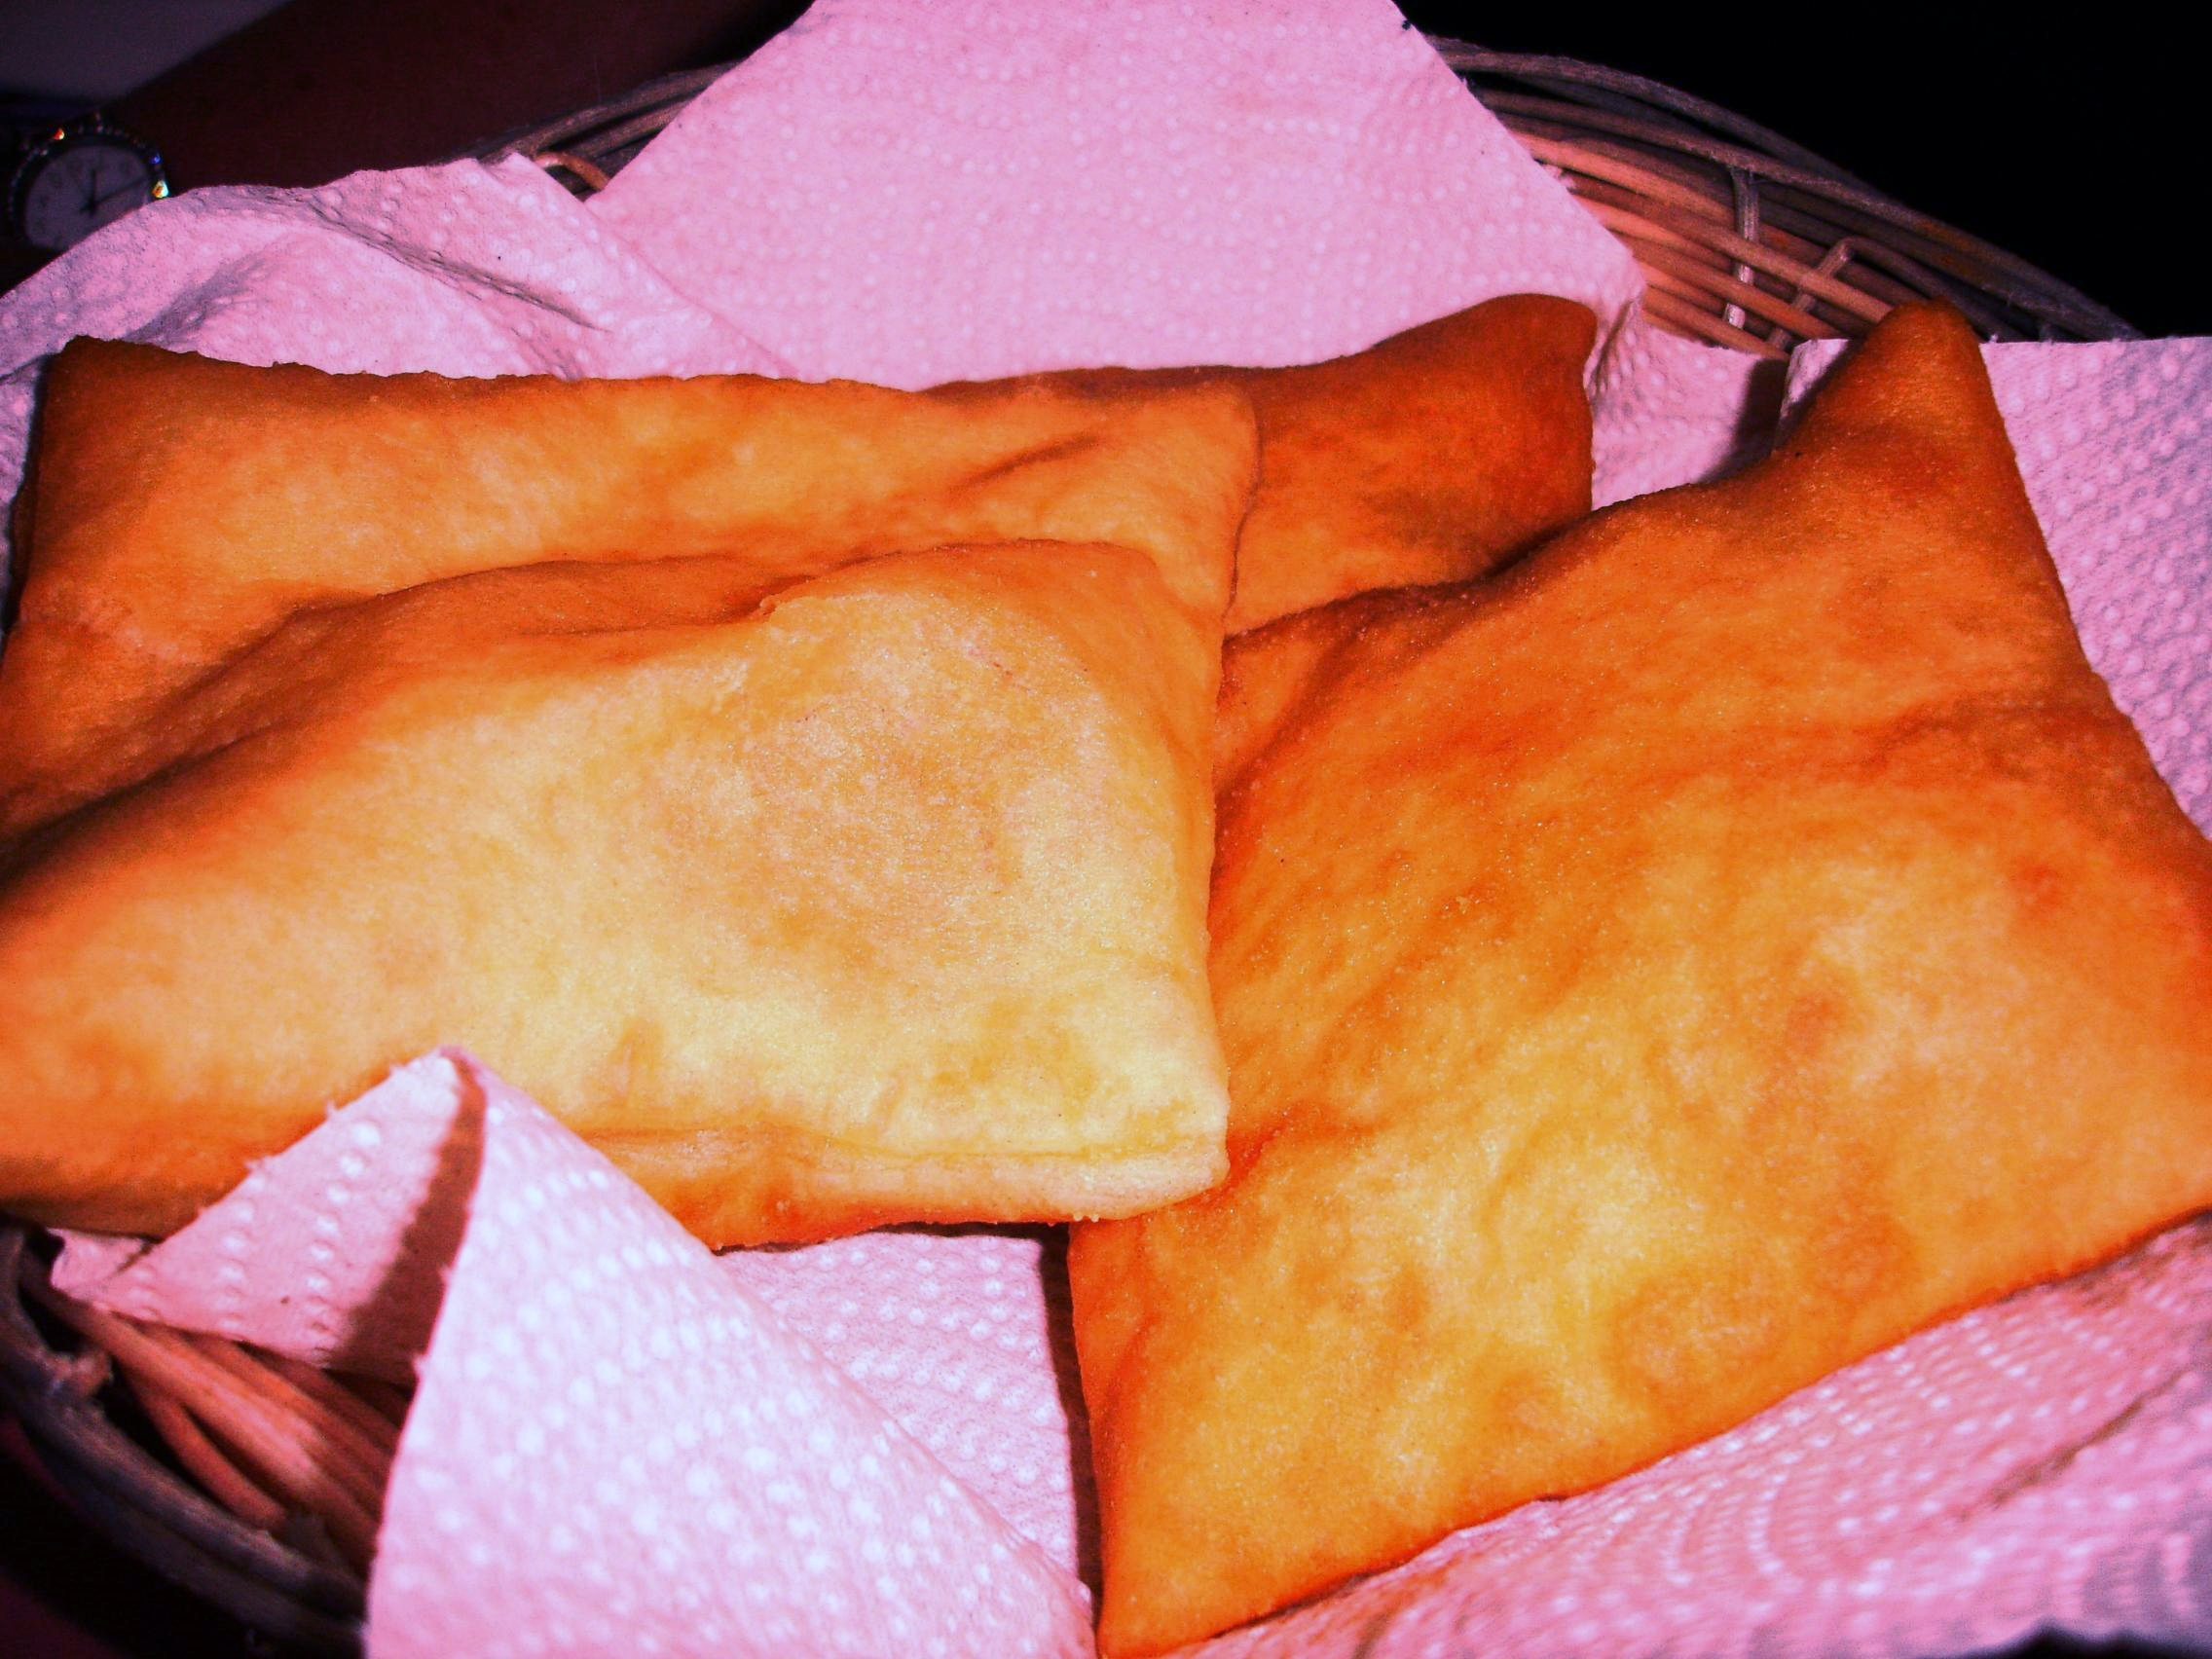 Fresh sopaipillas are an ideal medium for soaking up some of the richly flavored chile sauces at Sadie's.